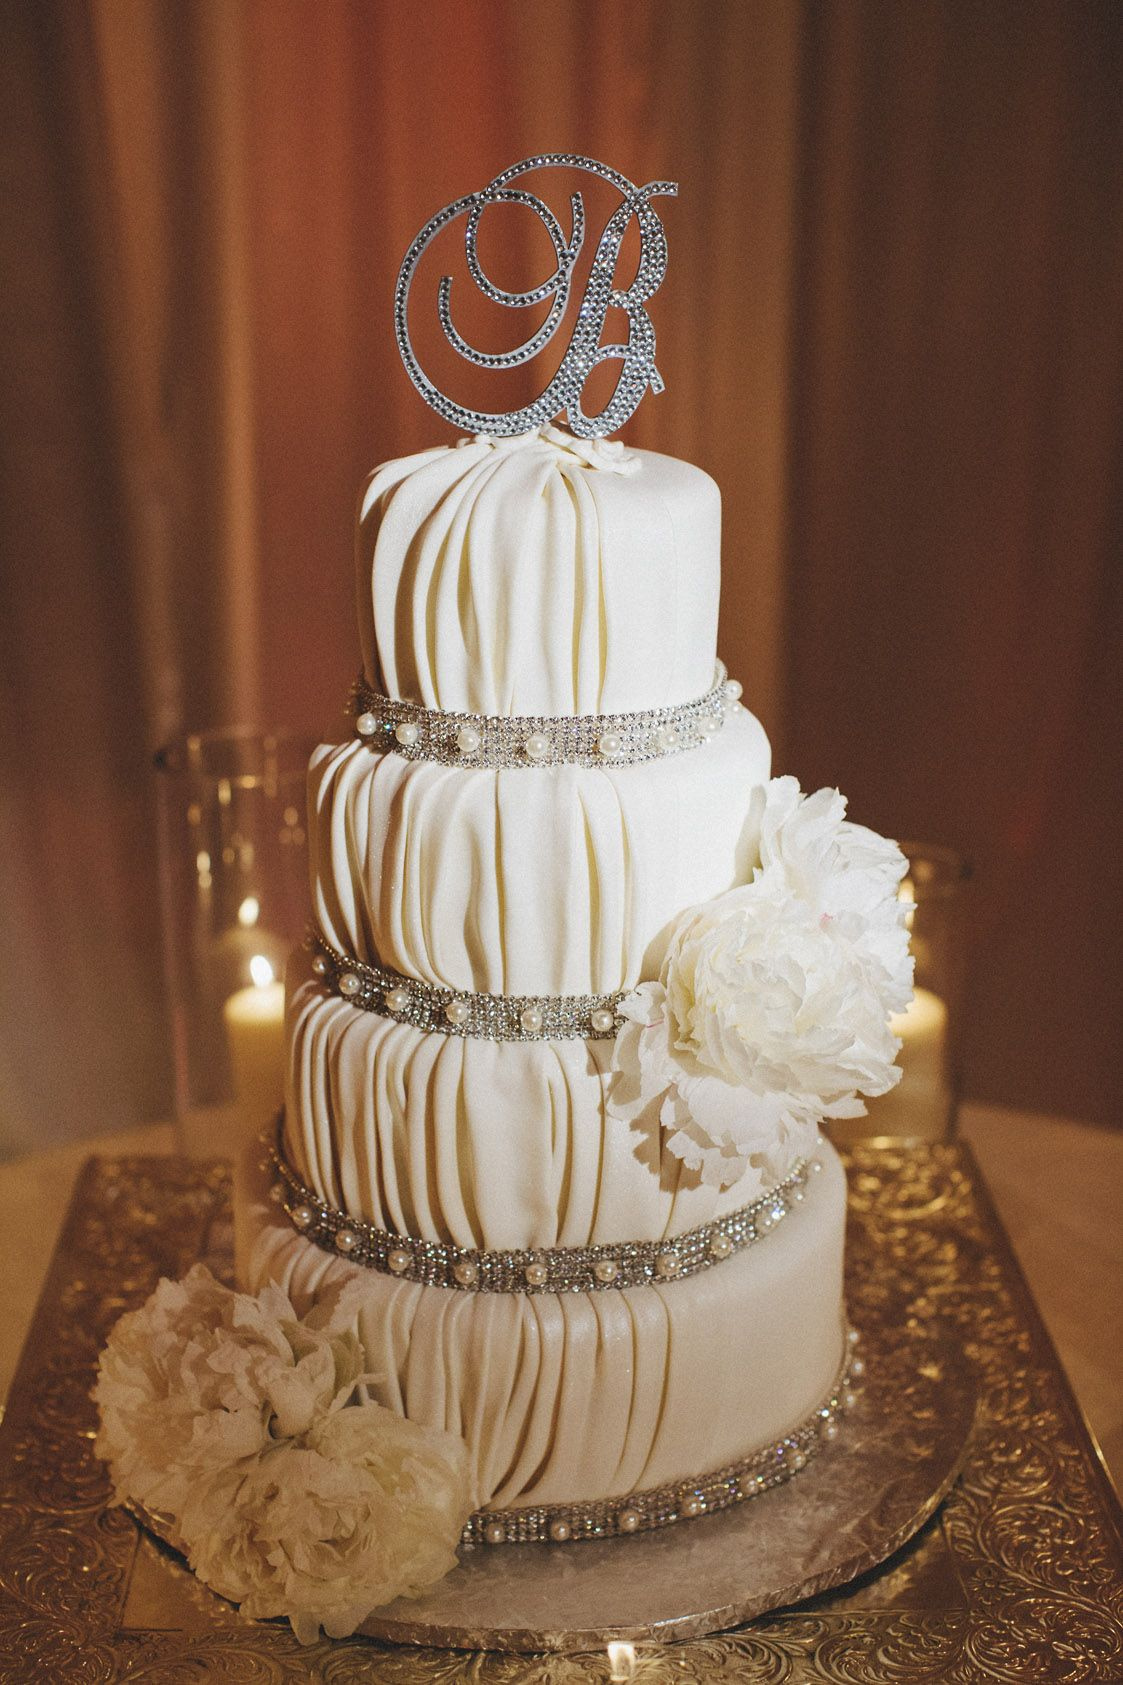 wedding cakes los angeles prices%0A Pin Spot Lighting Packages for Weddings and Special EventsEvent Decor  LightingOrange County Los Angeles Event Lighting PackagesElevated Pulse